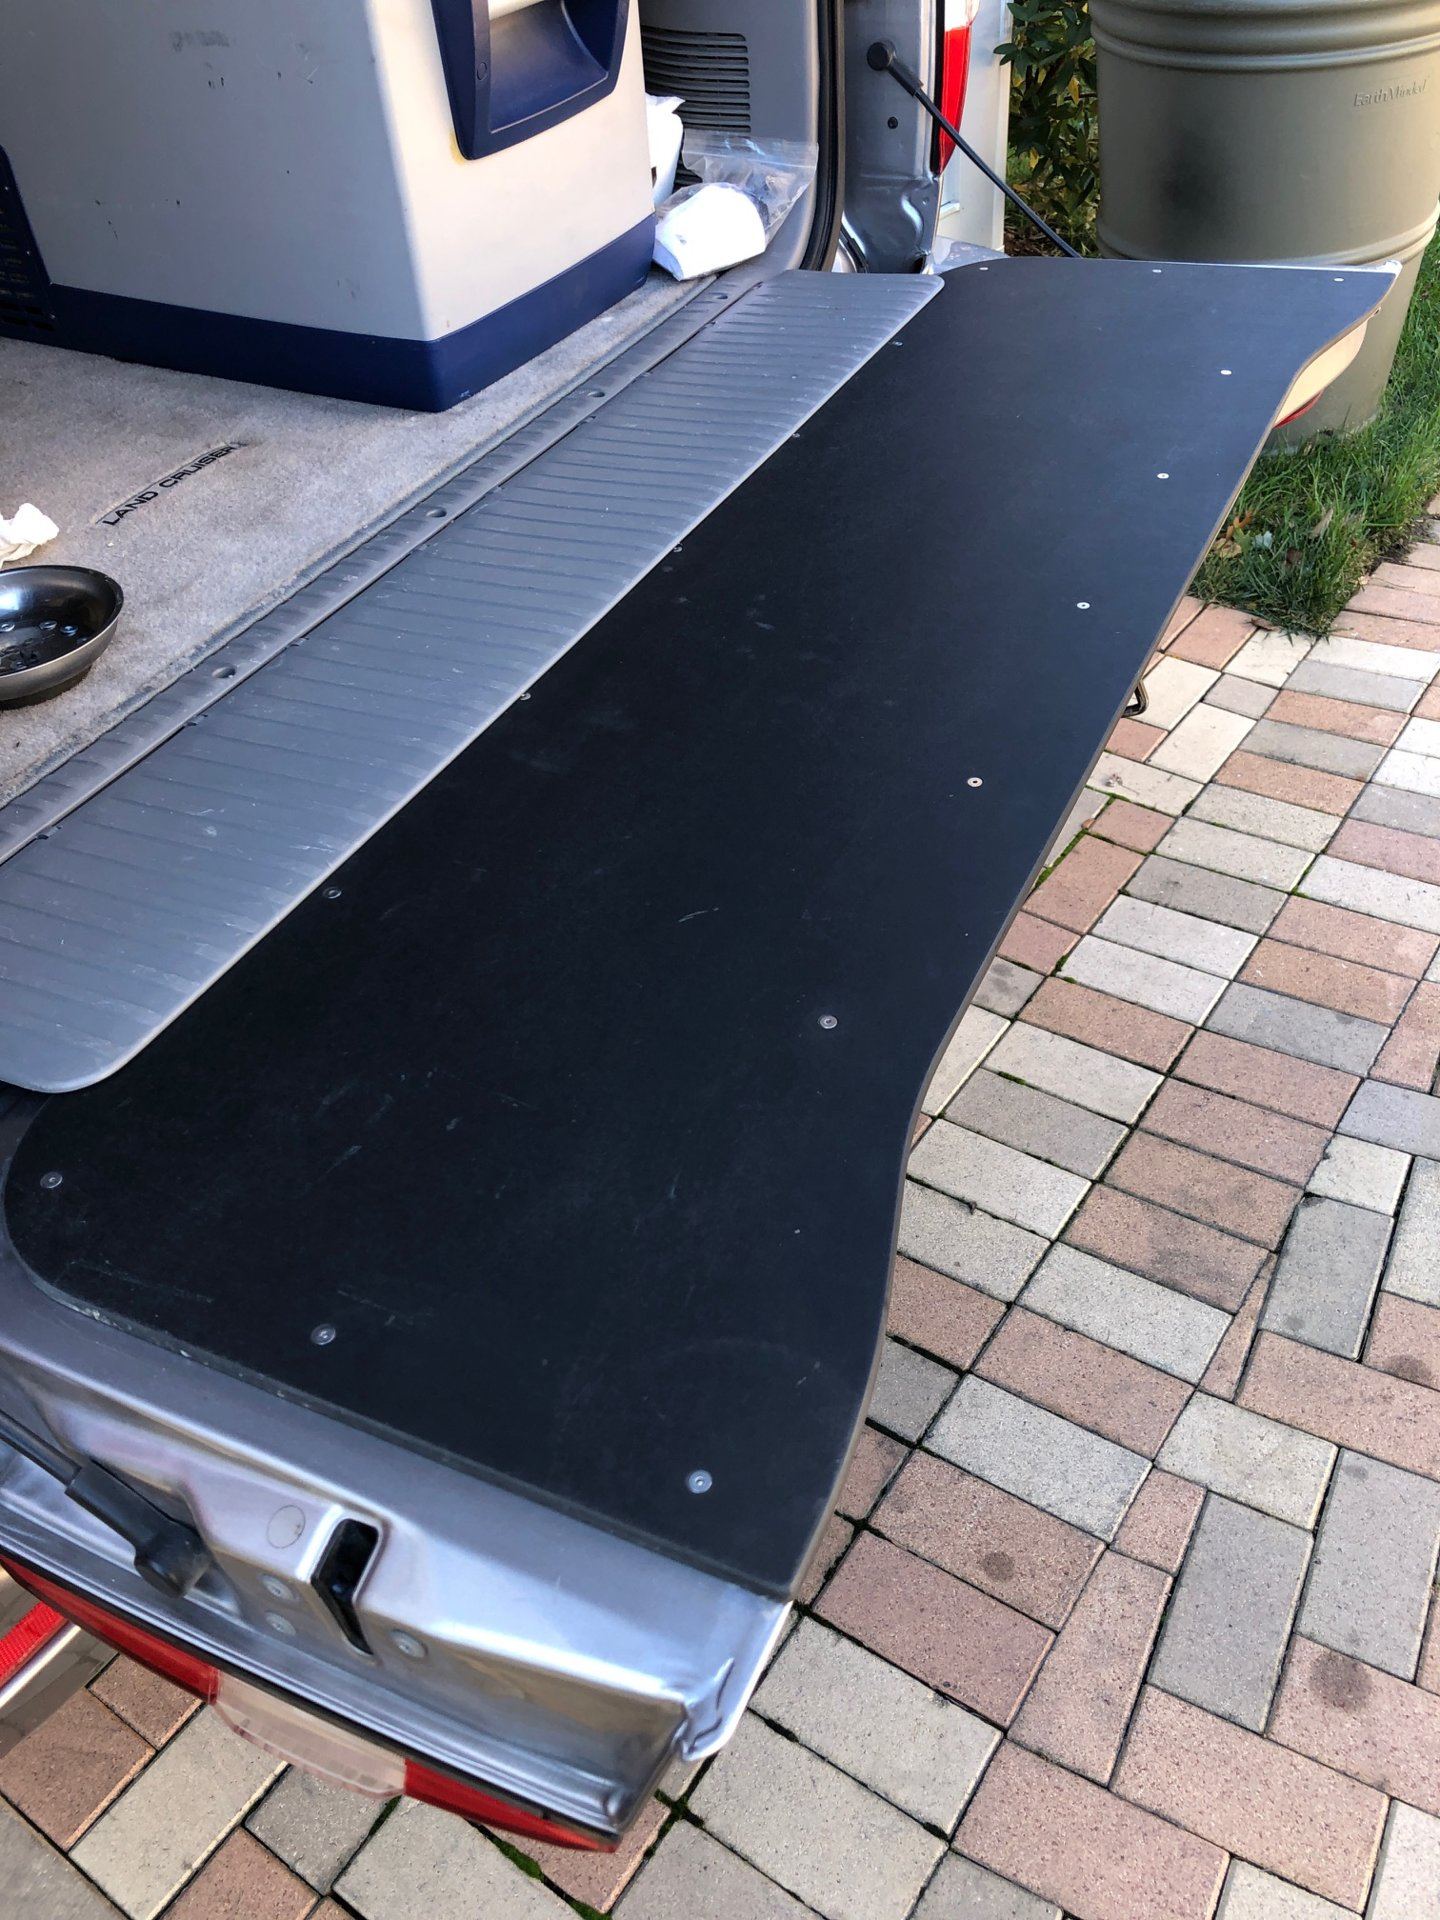 Tail Gate Cover.JPG